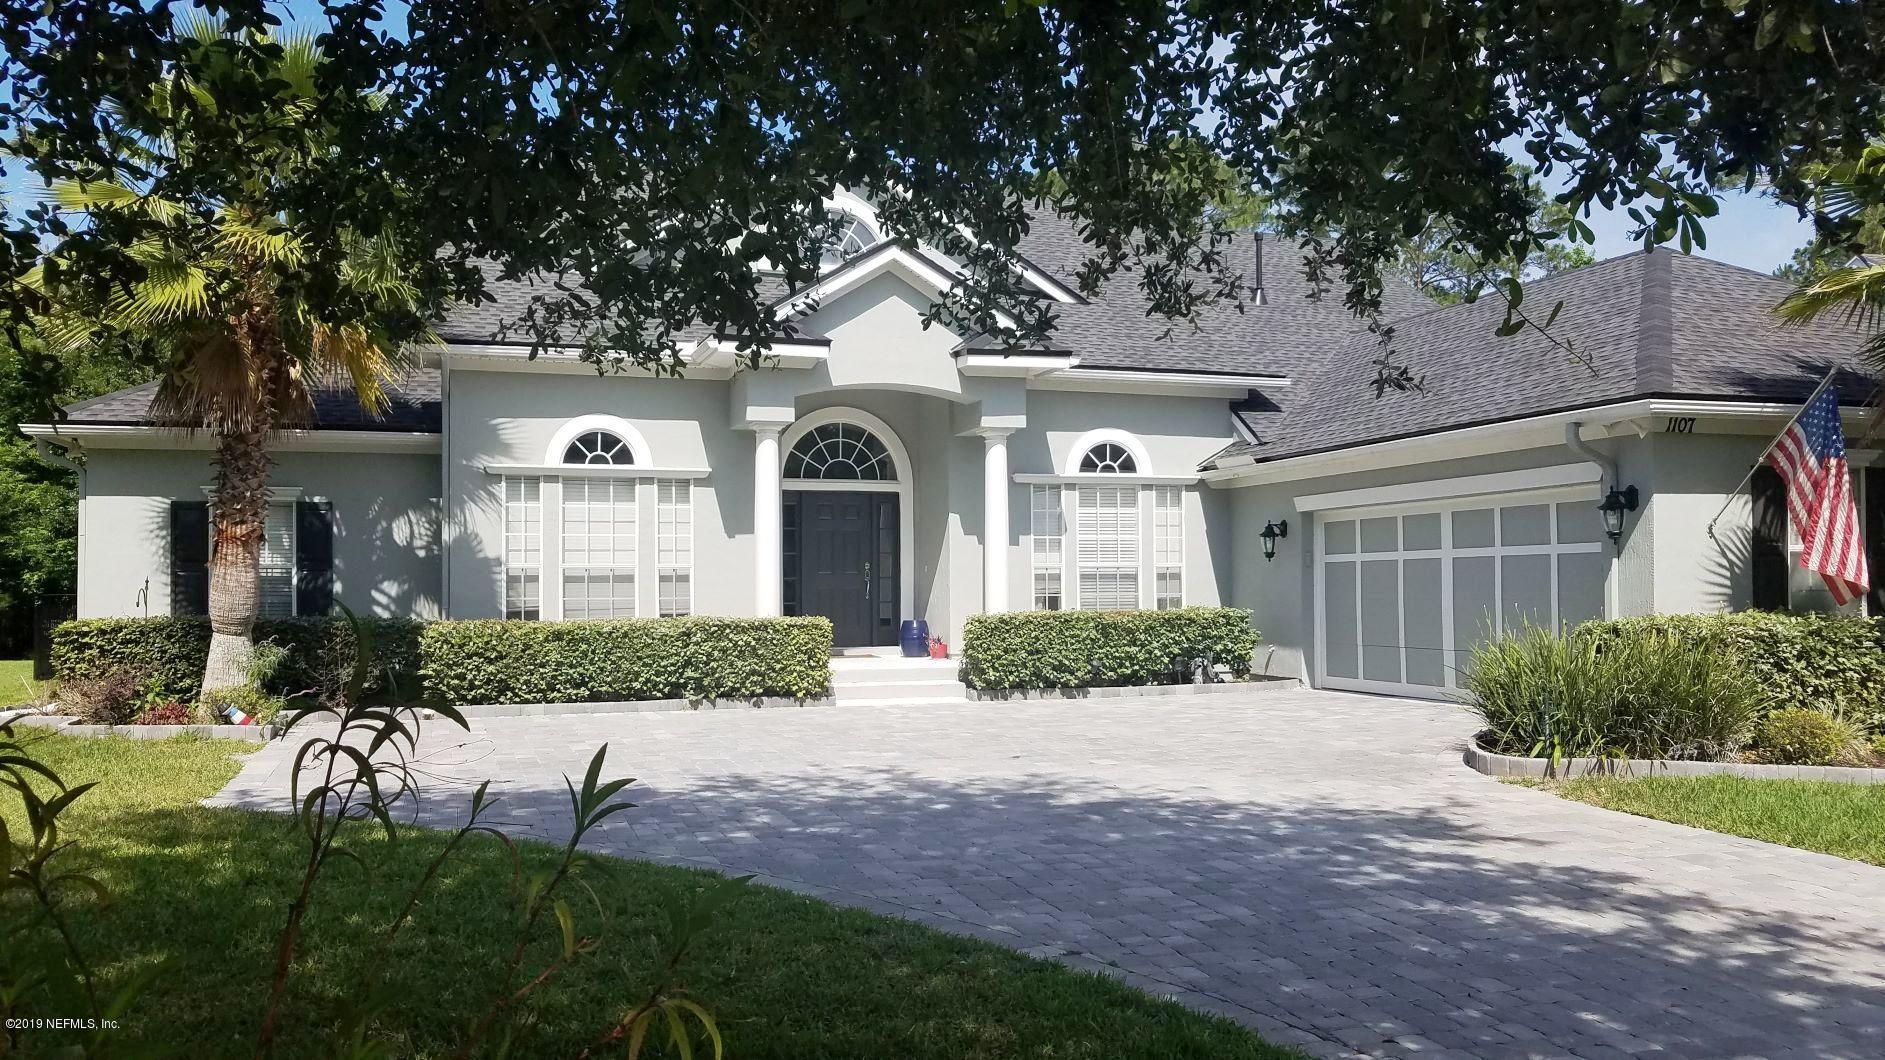 1107 EAGLE POINT, ST AUGUSTINE, FLORIDA 32092, 5 Bedrooms Bedrooms, ,4 BathroomsBathrooms,Residential - single family,For sale,EAGLE POINT,996020